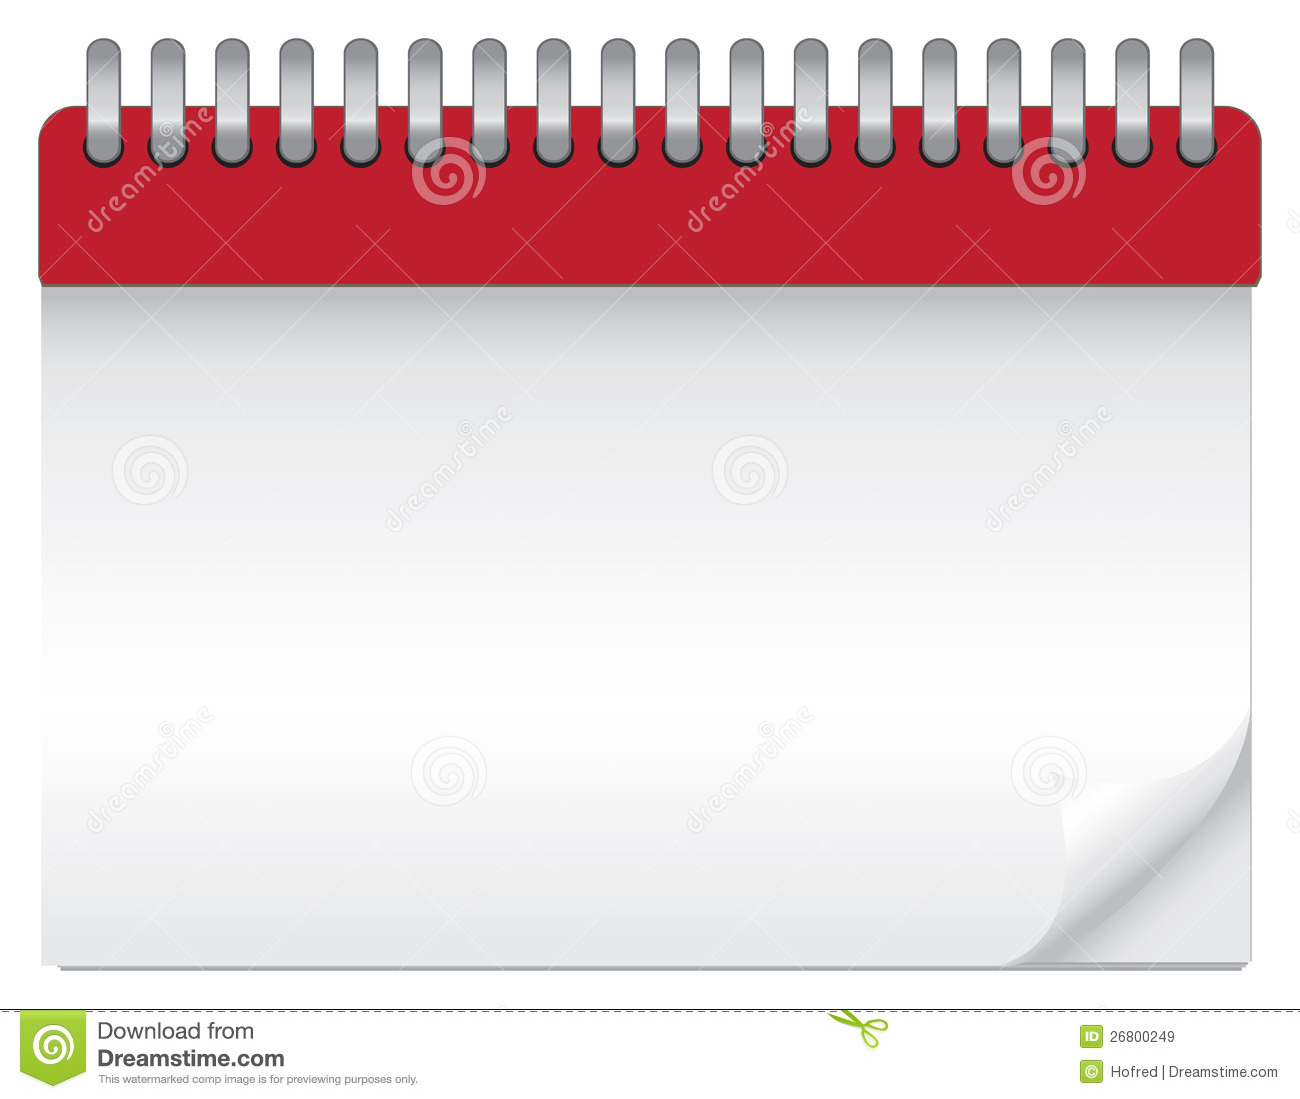 Blank Calendar Svg : Blank calendar stock vector illustration of clear